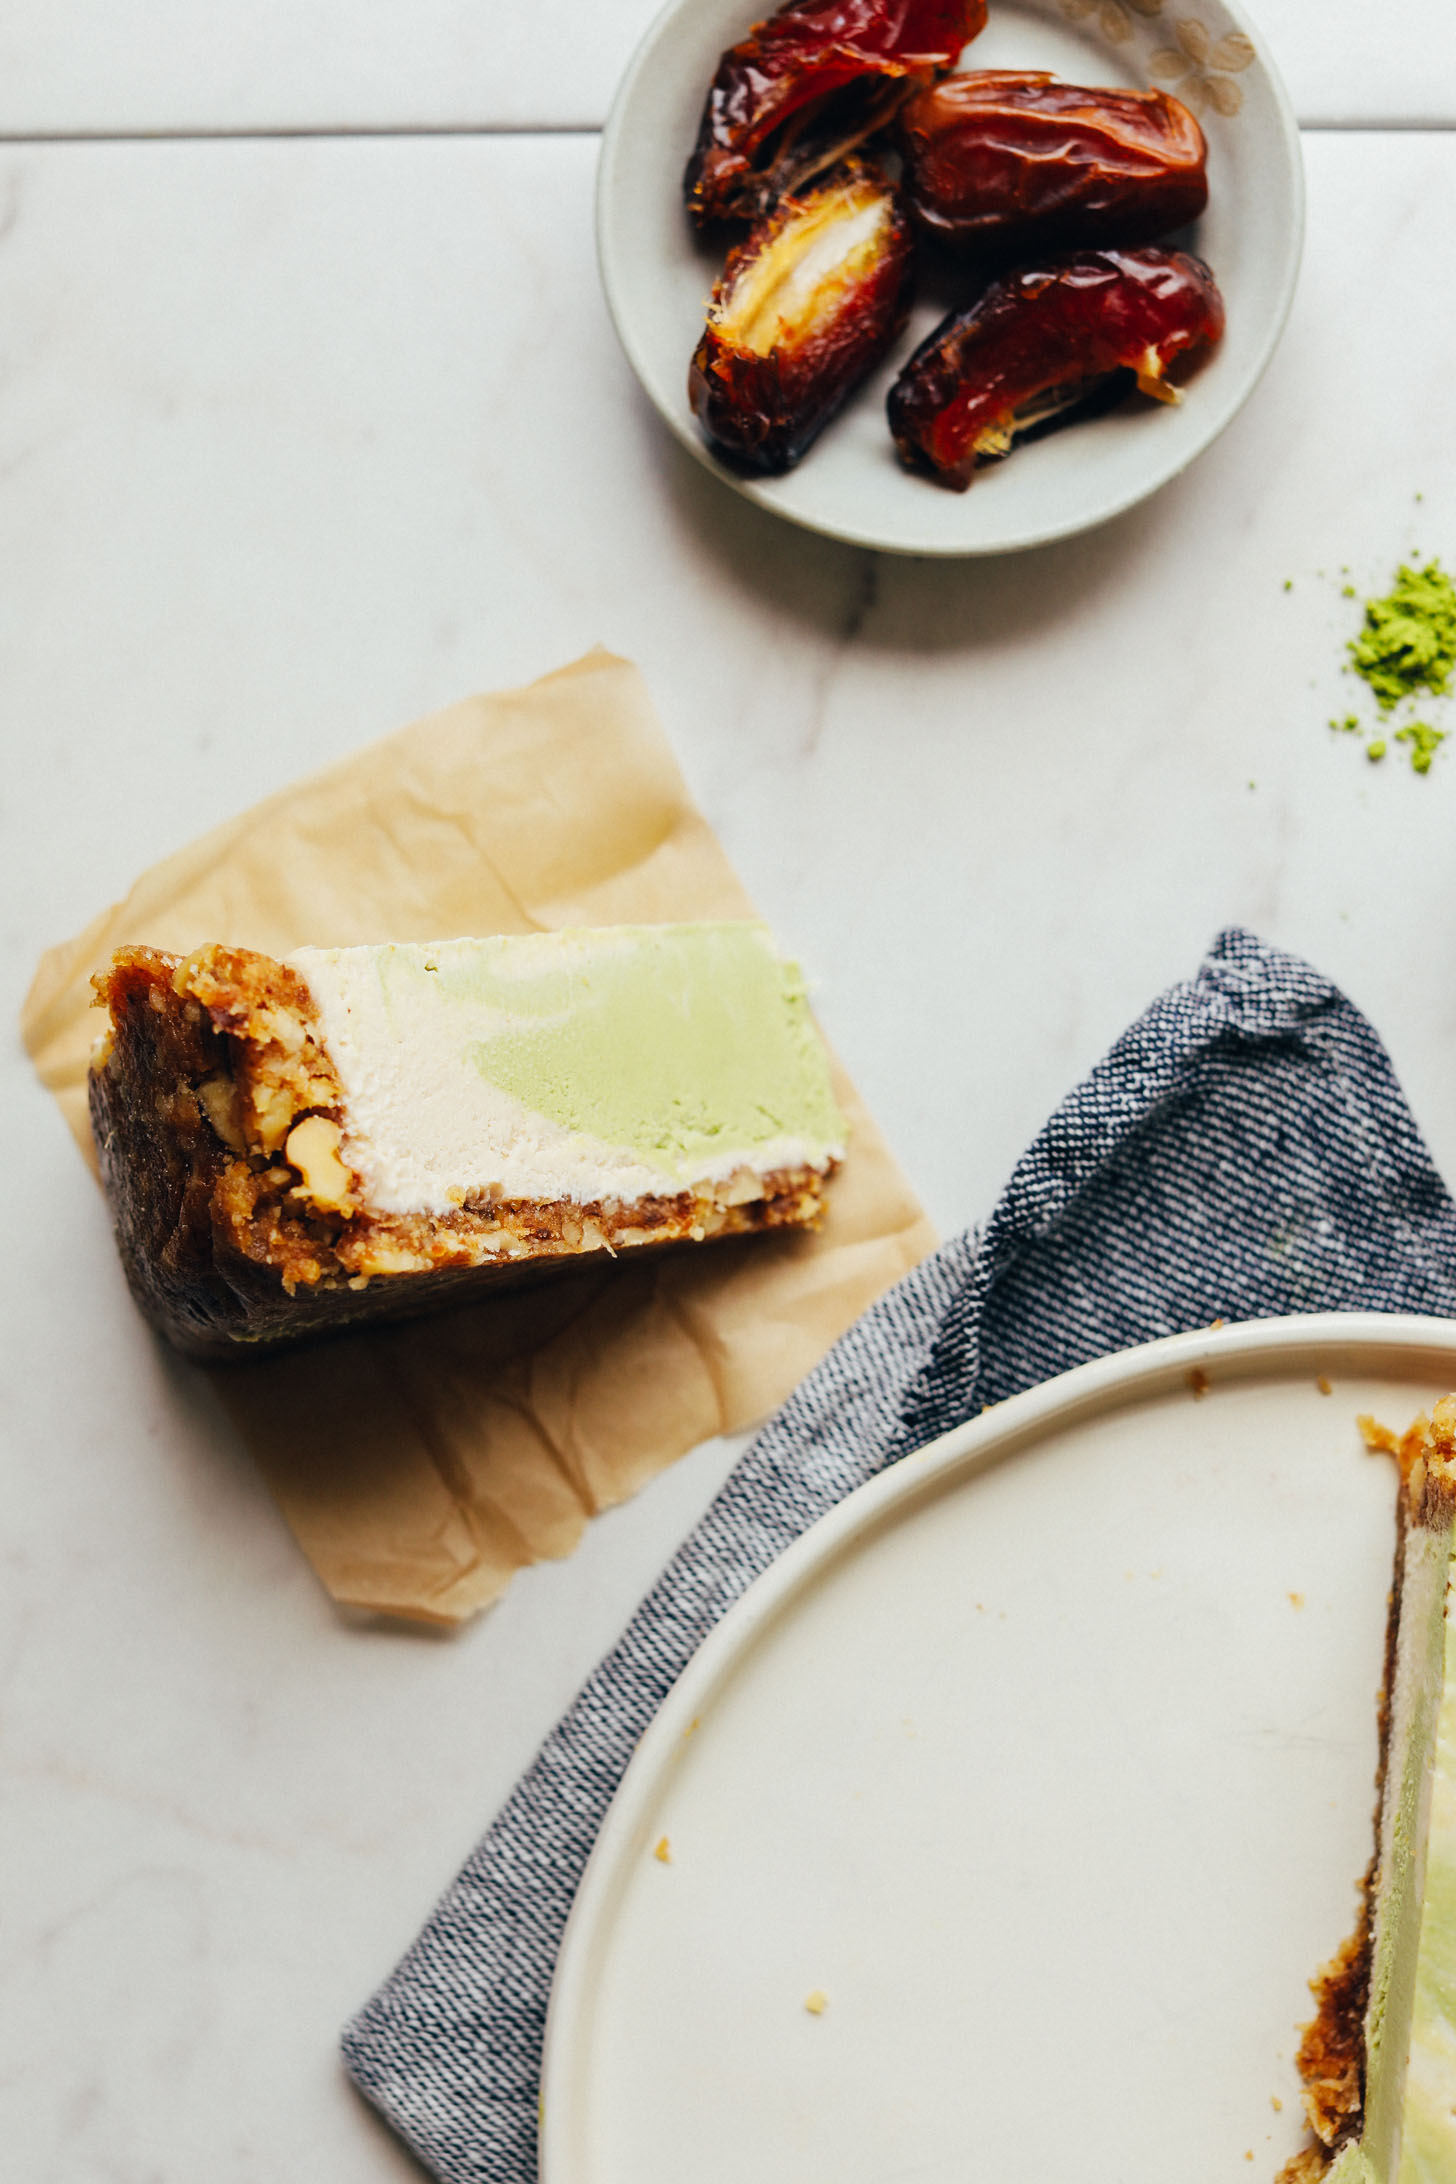 Slice of Matcha Swirl Cheesecake on a parchment paper square ready to be devoured for a delicious plant-based dessert